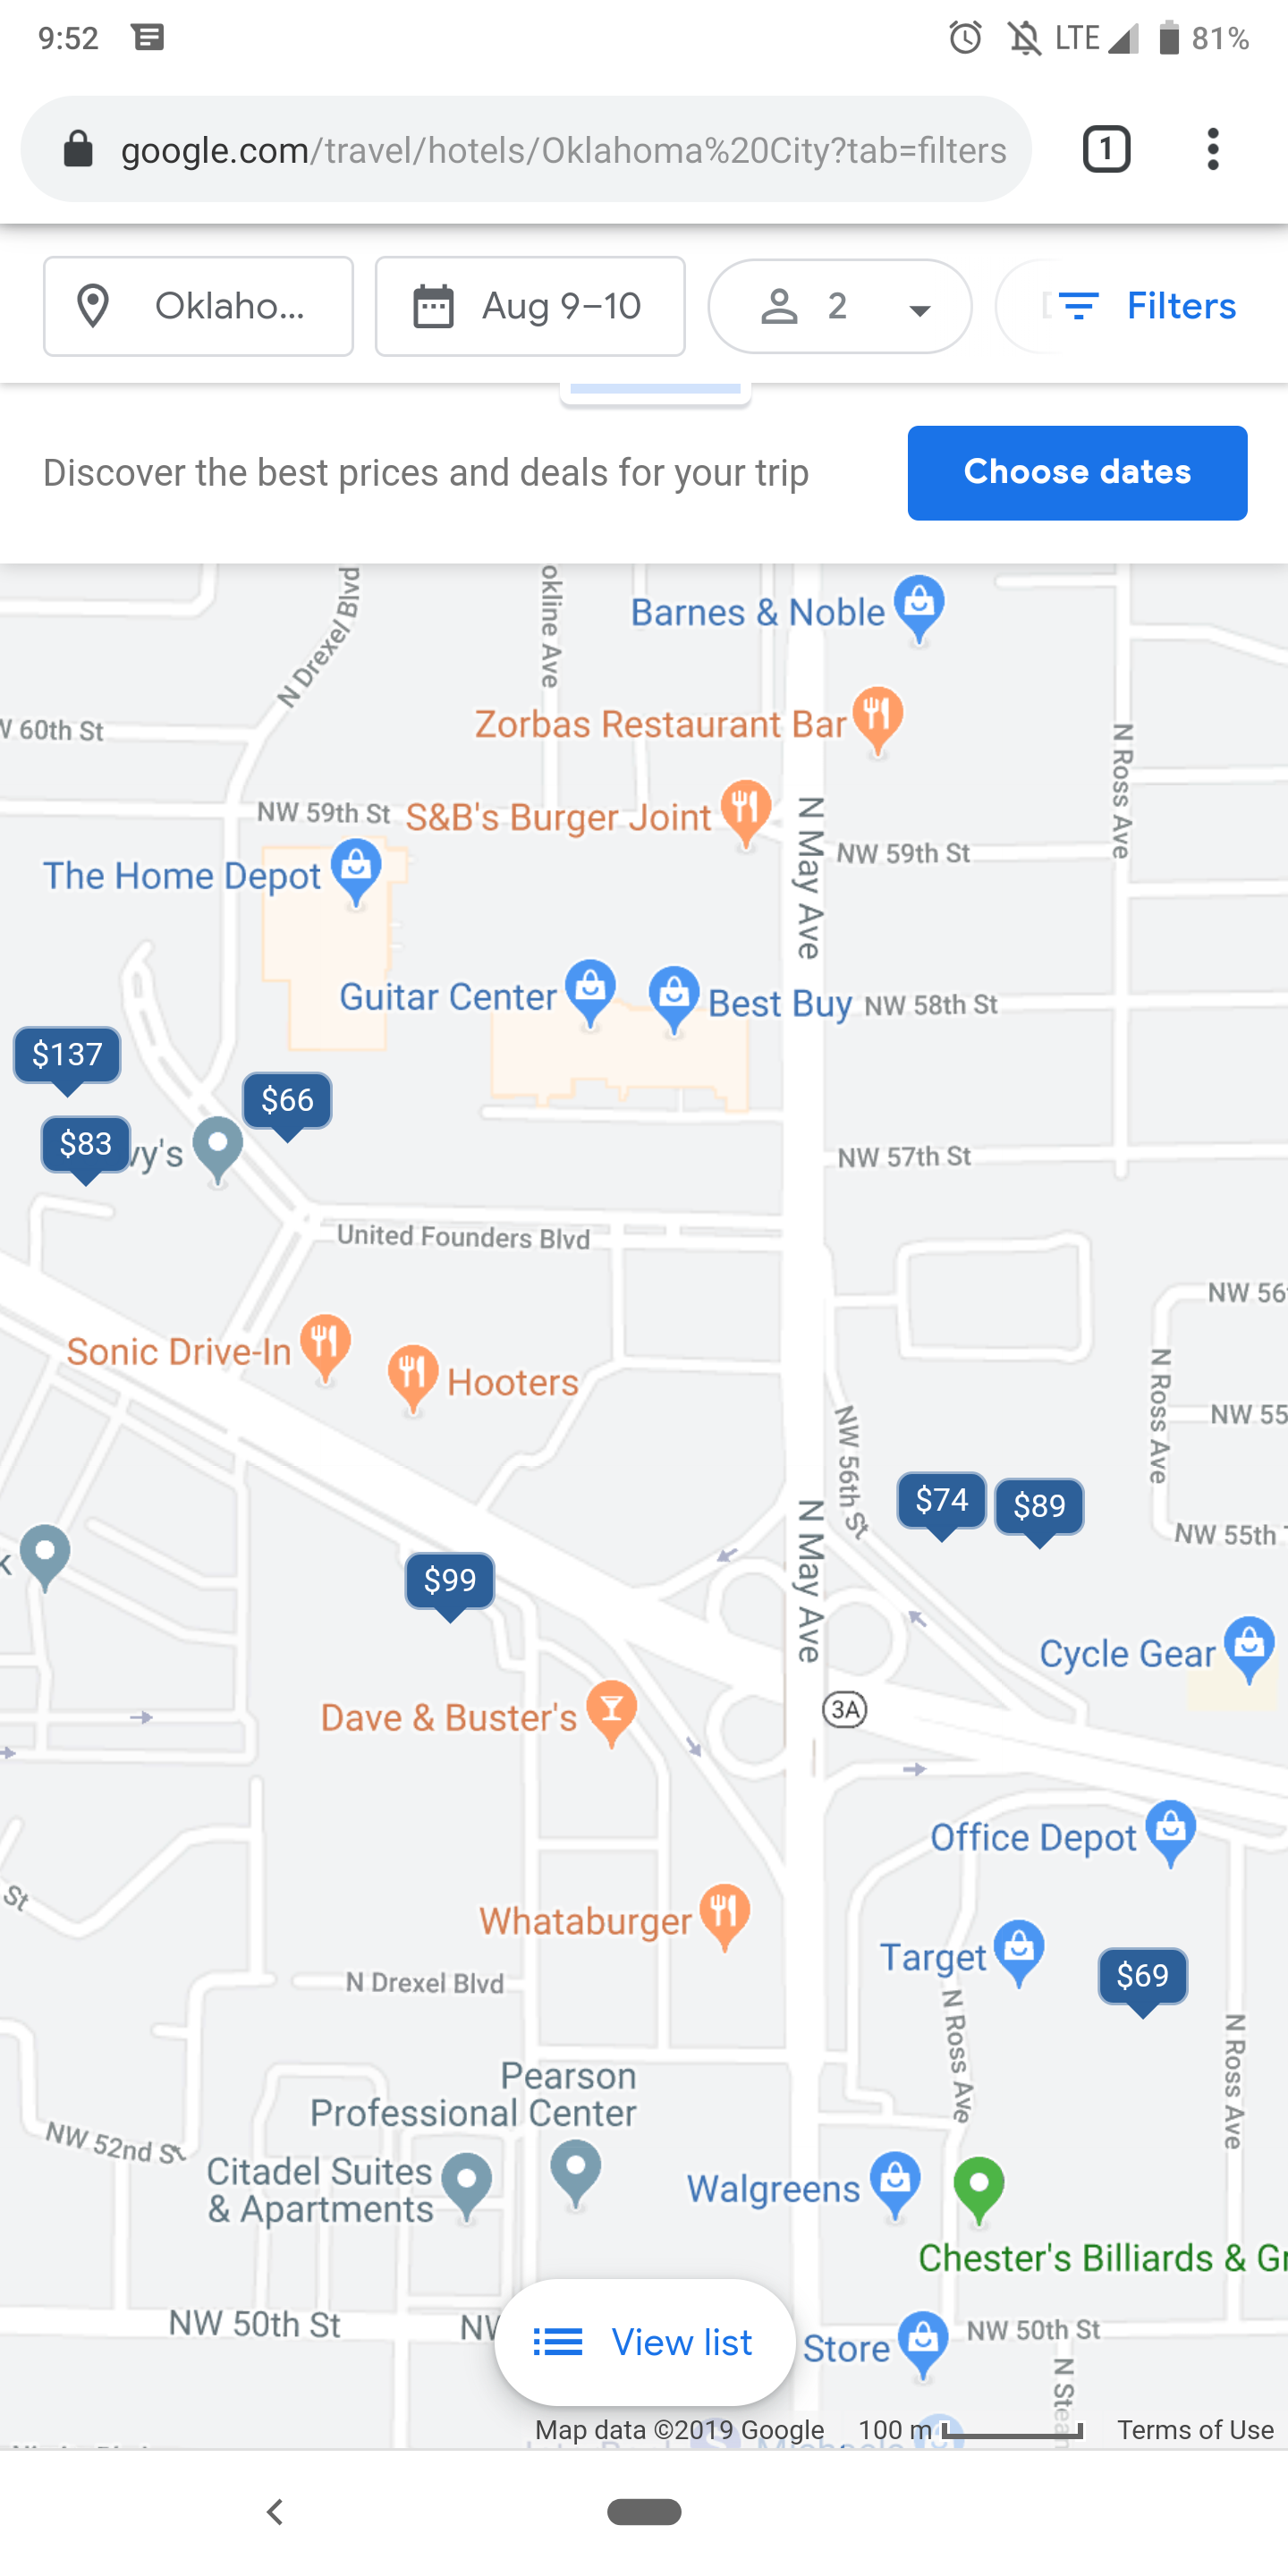 Why does Google maps show a hotel but the hotel search does ... Interstate Map Of Planned on map of interstate 90, map of interstate 20, map of interstate 69, map of interstate 73, map of interstate 480, map of interstate 99, map of us interstate highway system, map of interstate 5, map of interstate 70, map of interstate 25, map of interstate 280, map of interstate 15, map of interstate 77, map of interstate 8, map of interstate 485, map of interstate 35, map of interstate 75, map of interstate 45, map of interstate 79, map of interstate 80,